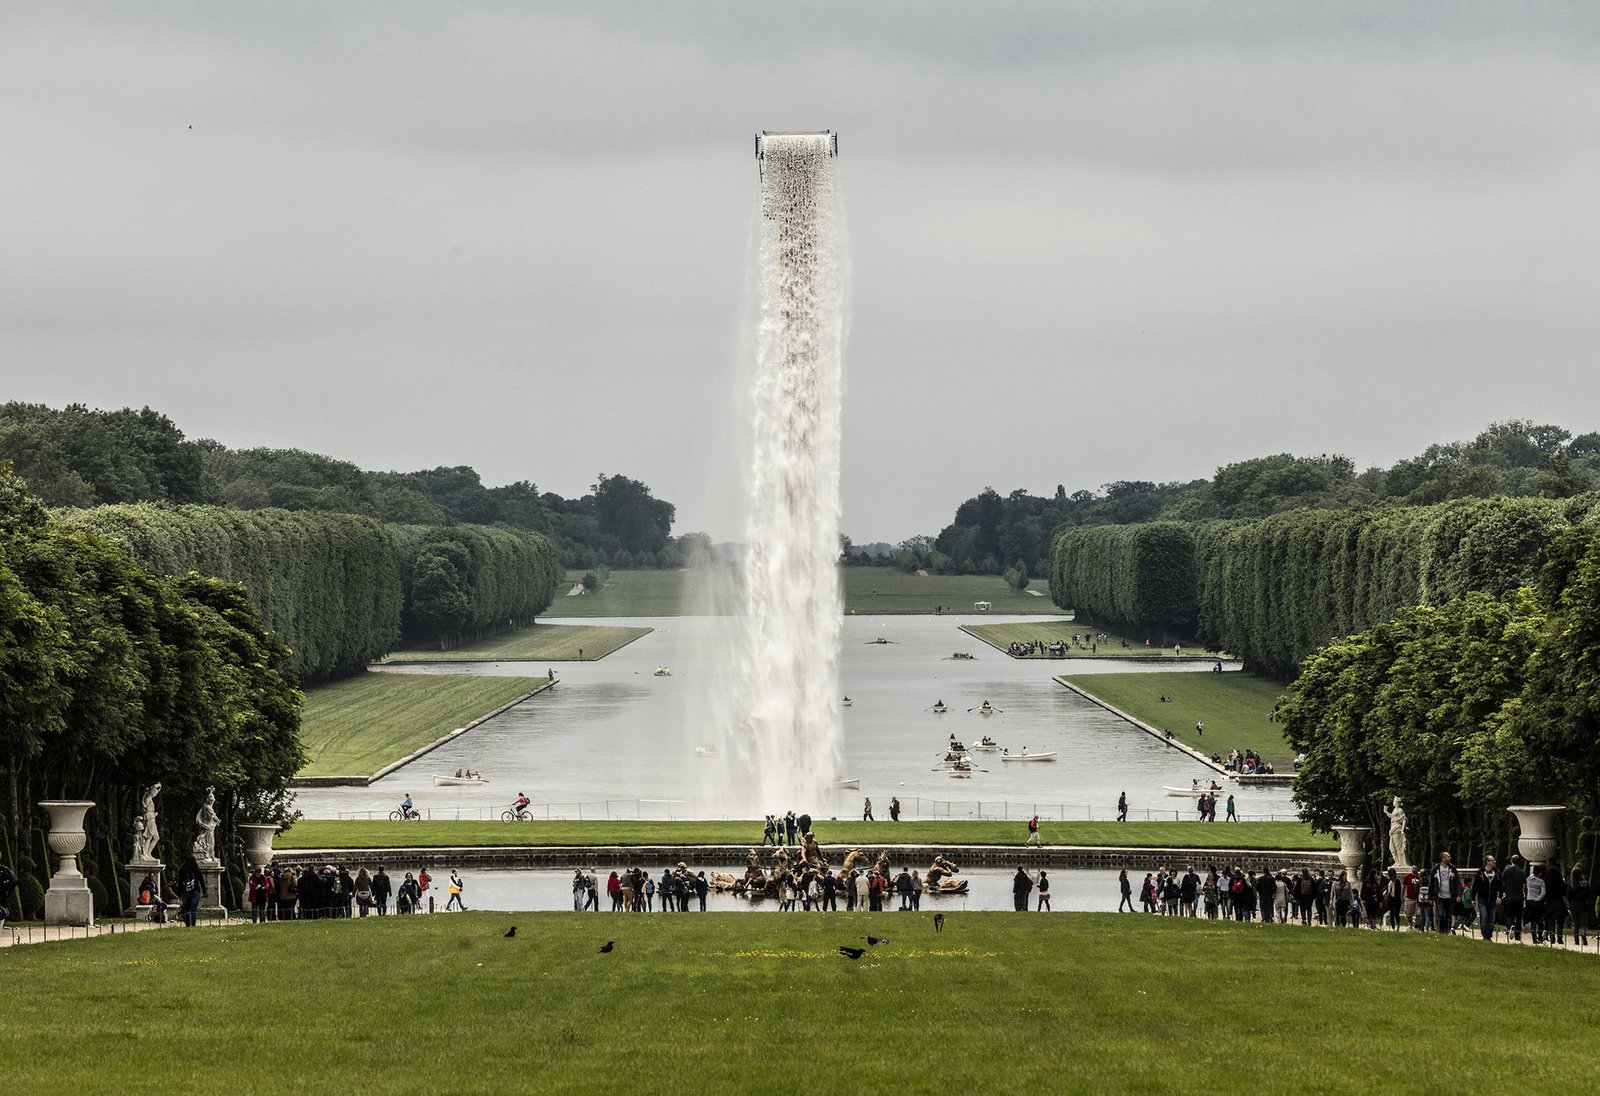 Photo 1 of 5 in Olafur Eliasson Gives Versailles a Surreal Aura